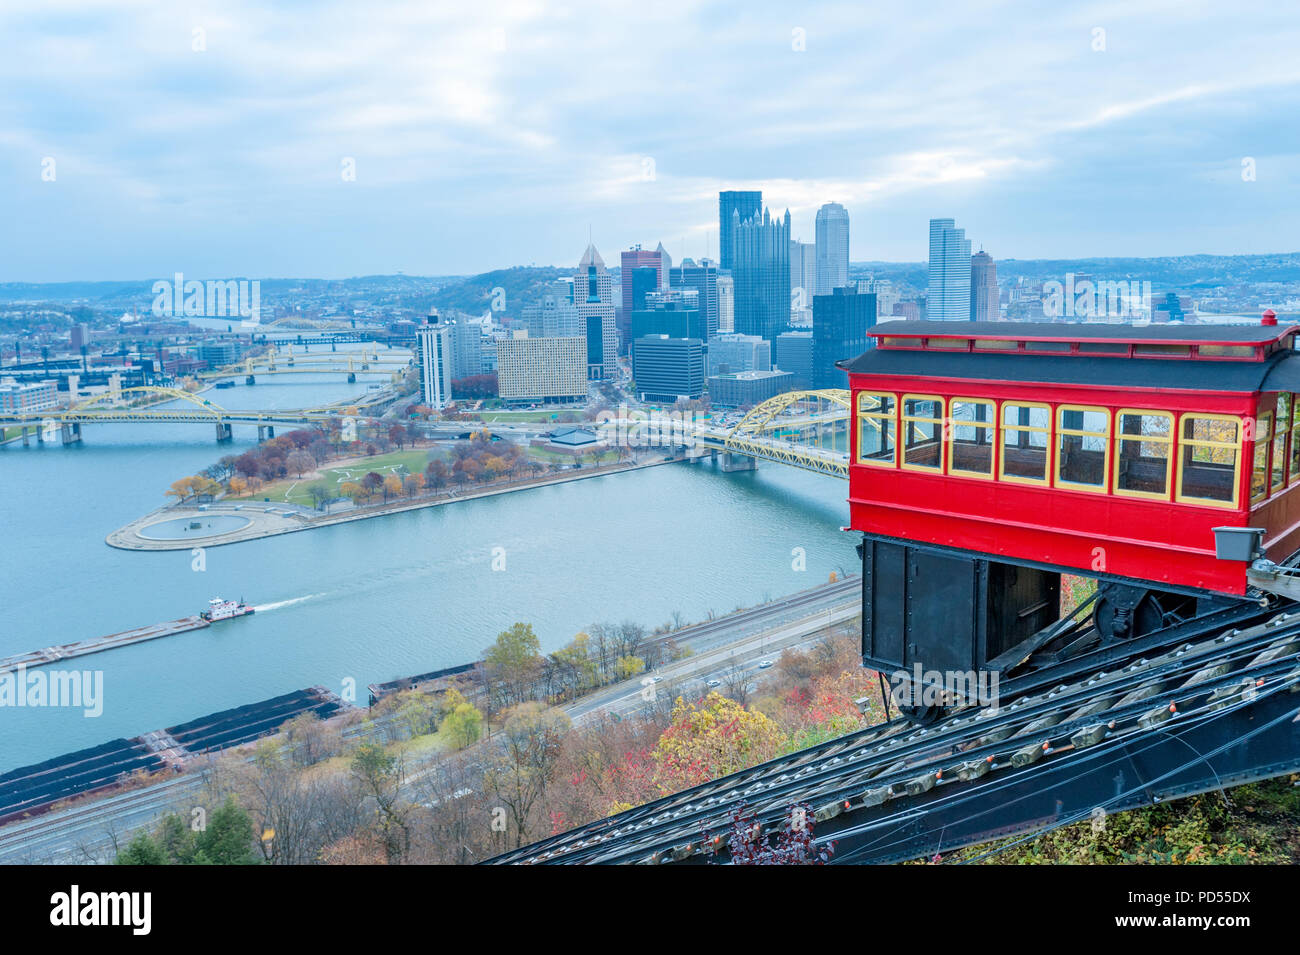 View of historic Duquesne Incline car and Pittsburgh panorama from the observation deck - Stock Image